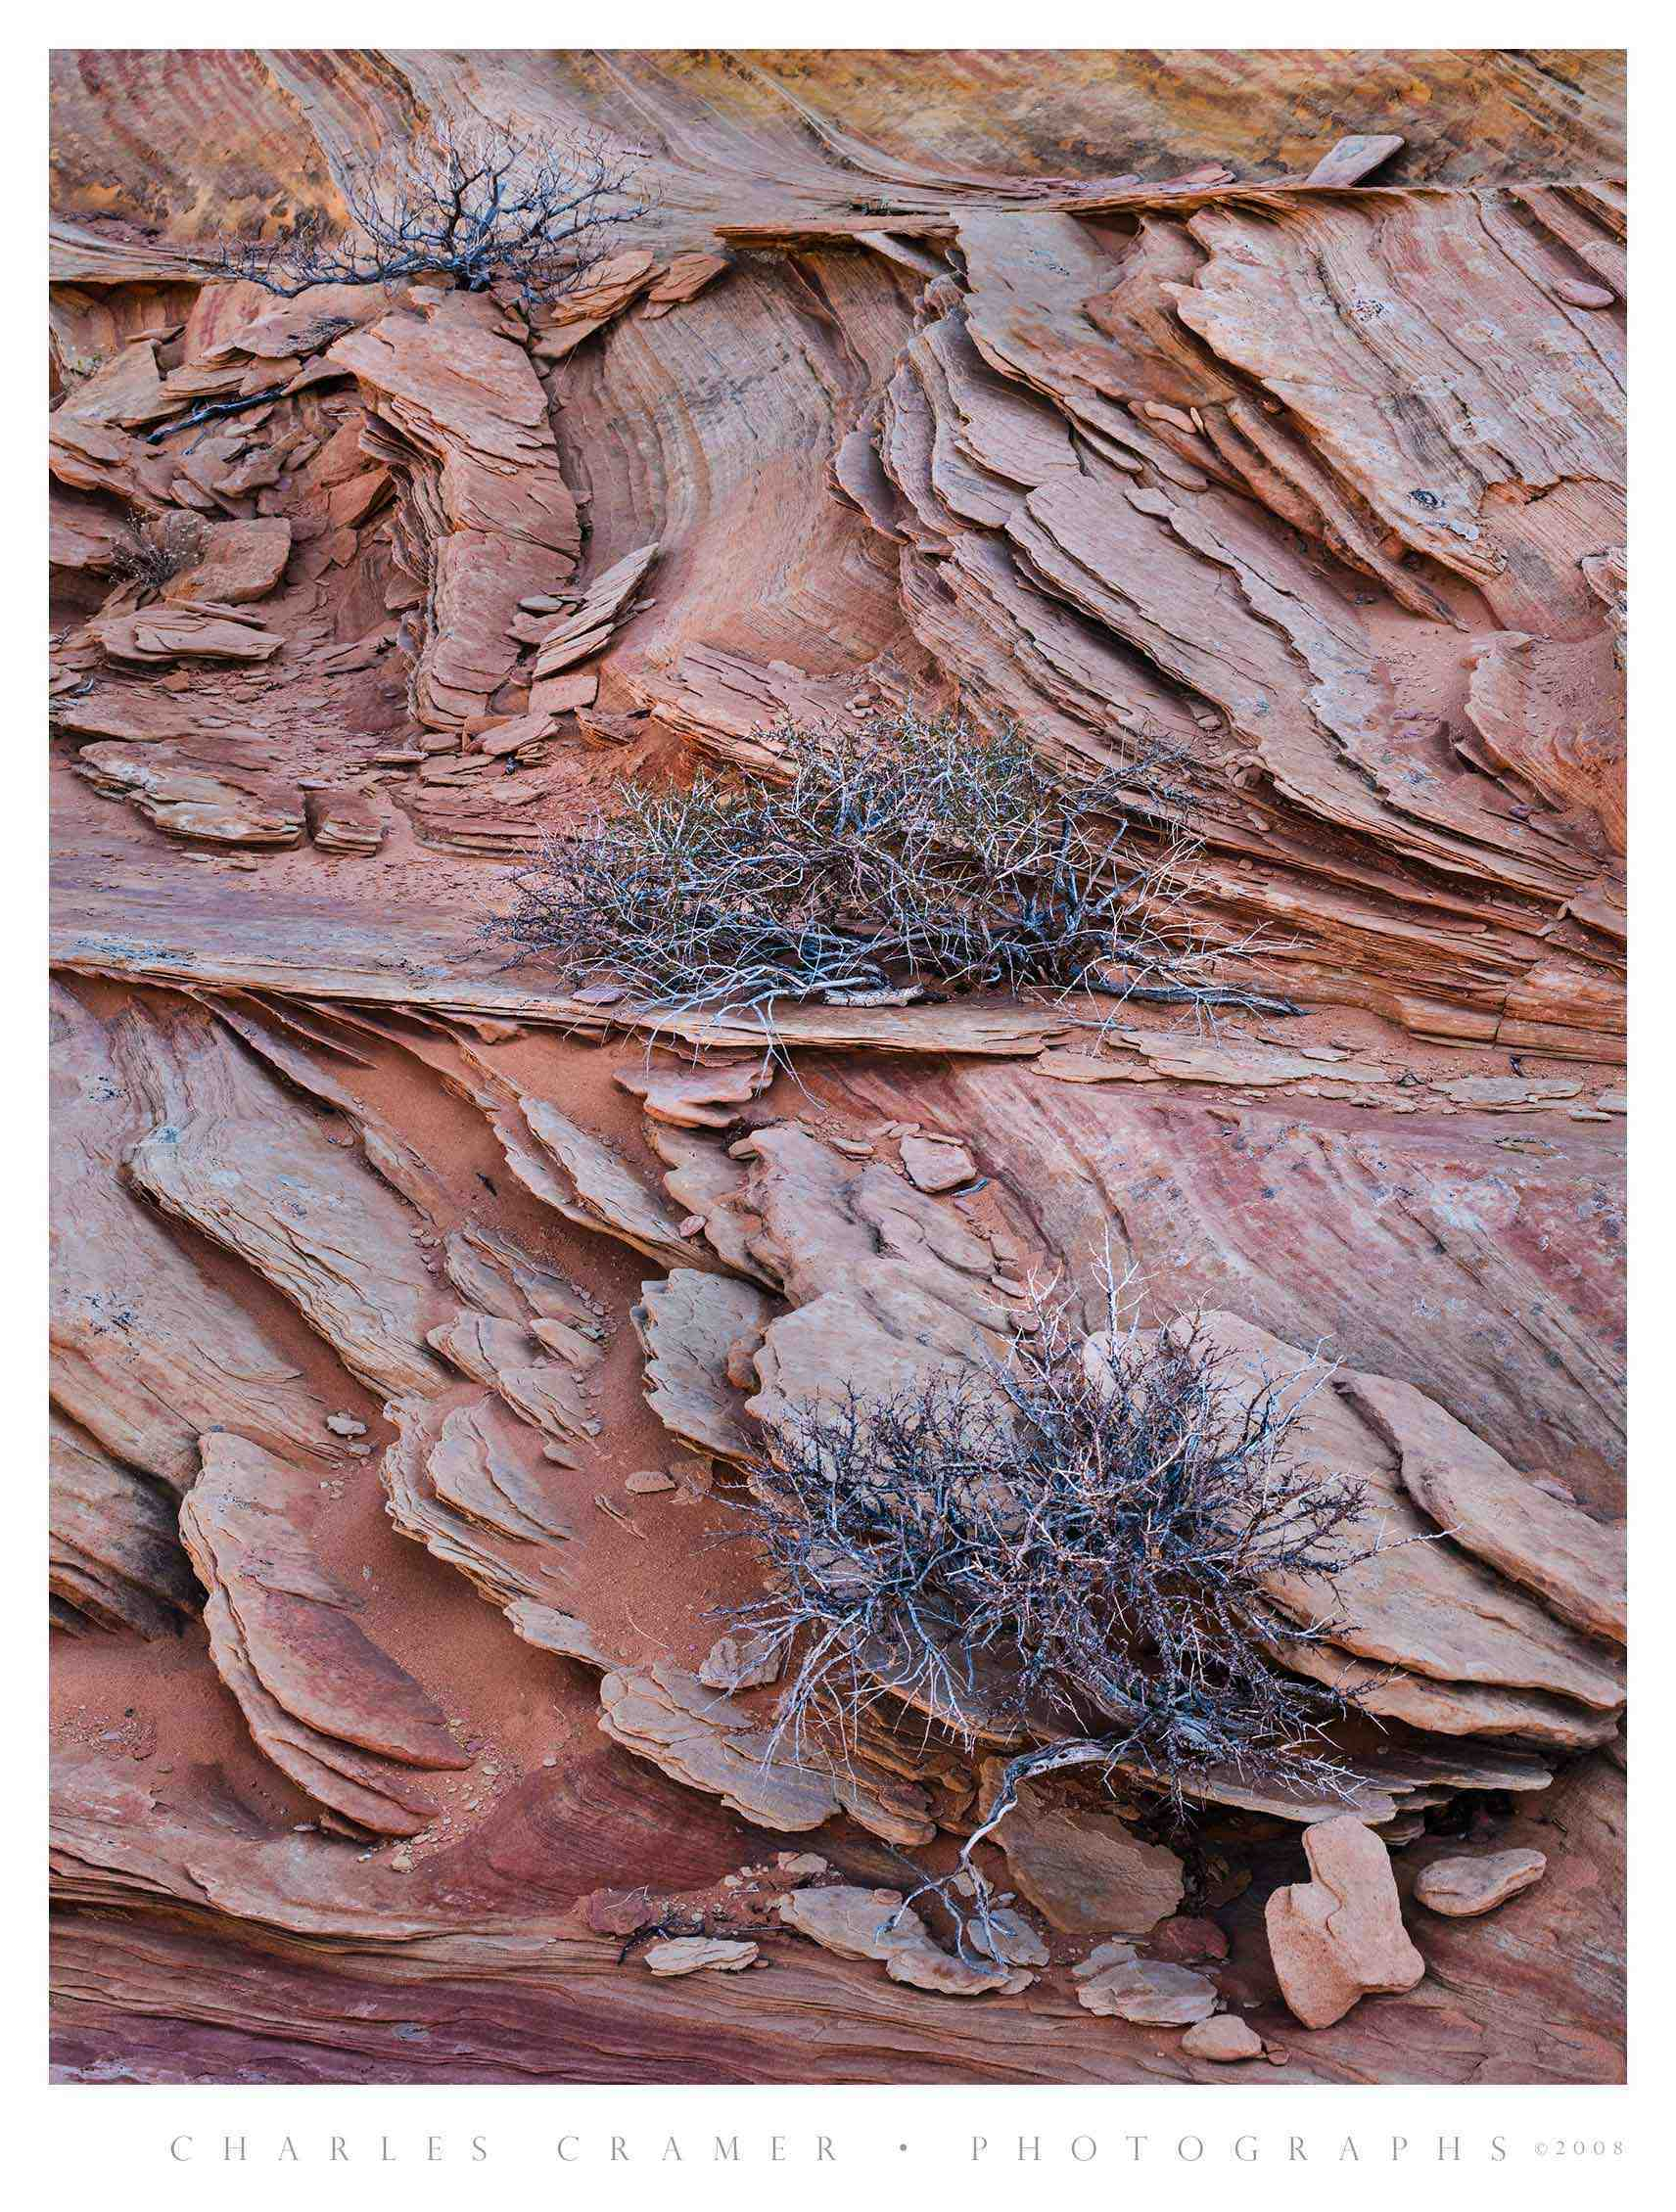 Shrubs and Ledges, White Pocket, Utah